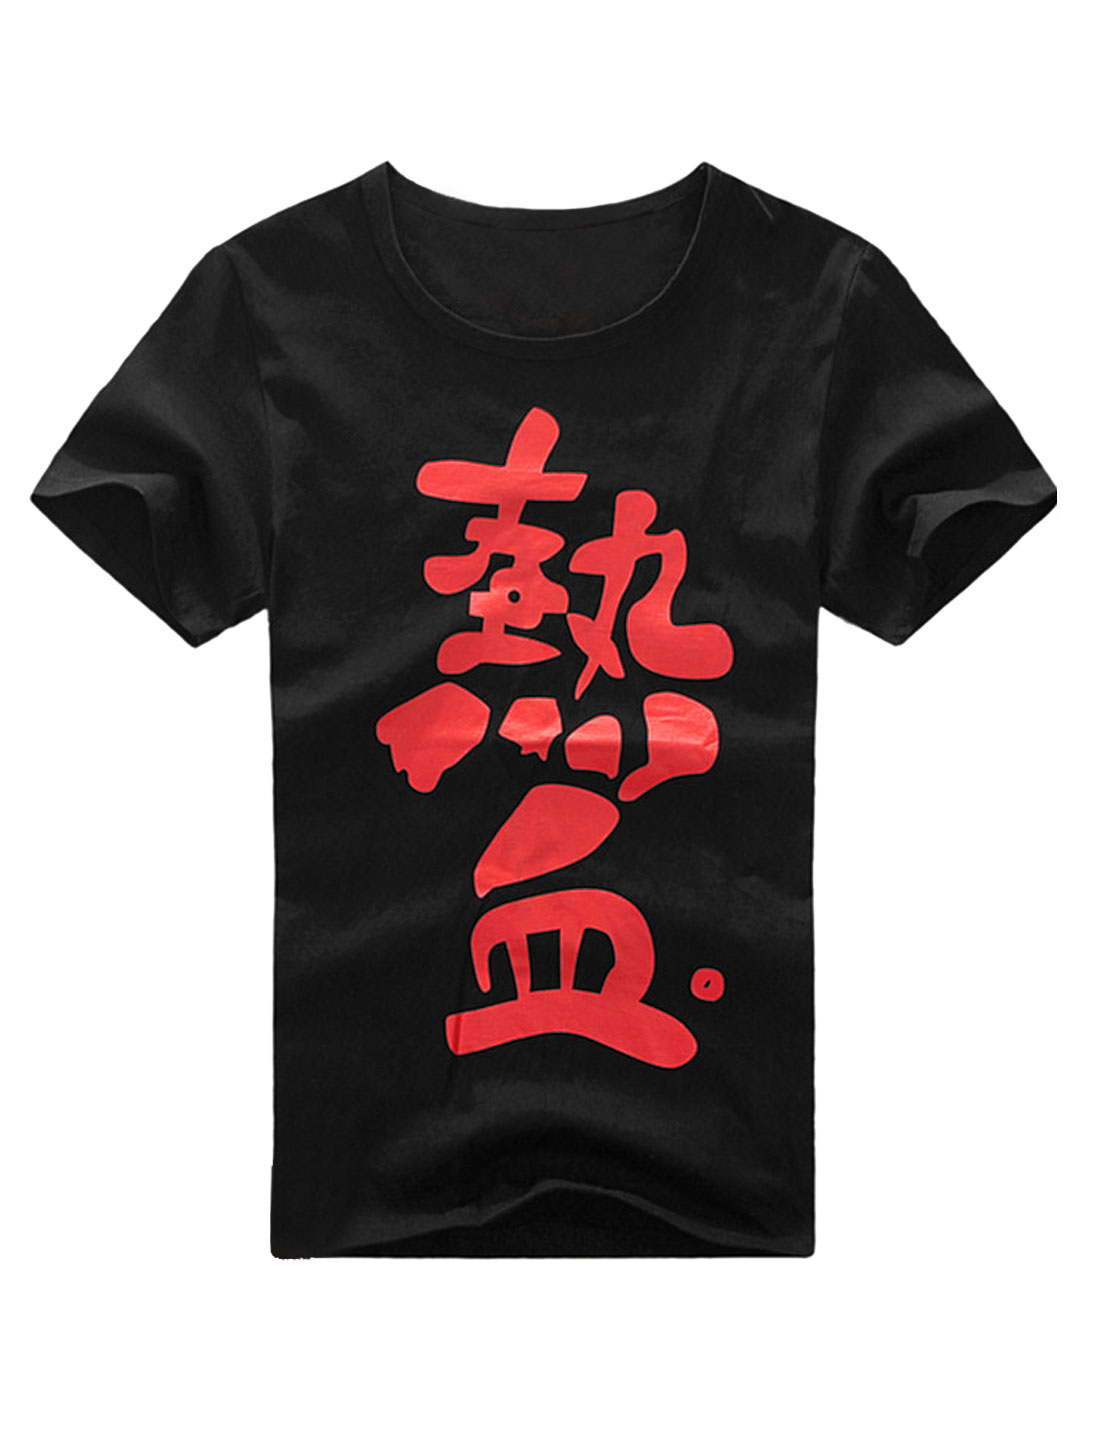 Men's Chinese Character Short Sleeve Casual Tee Shirt Black L